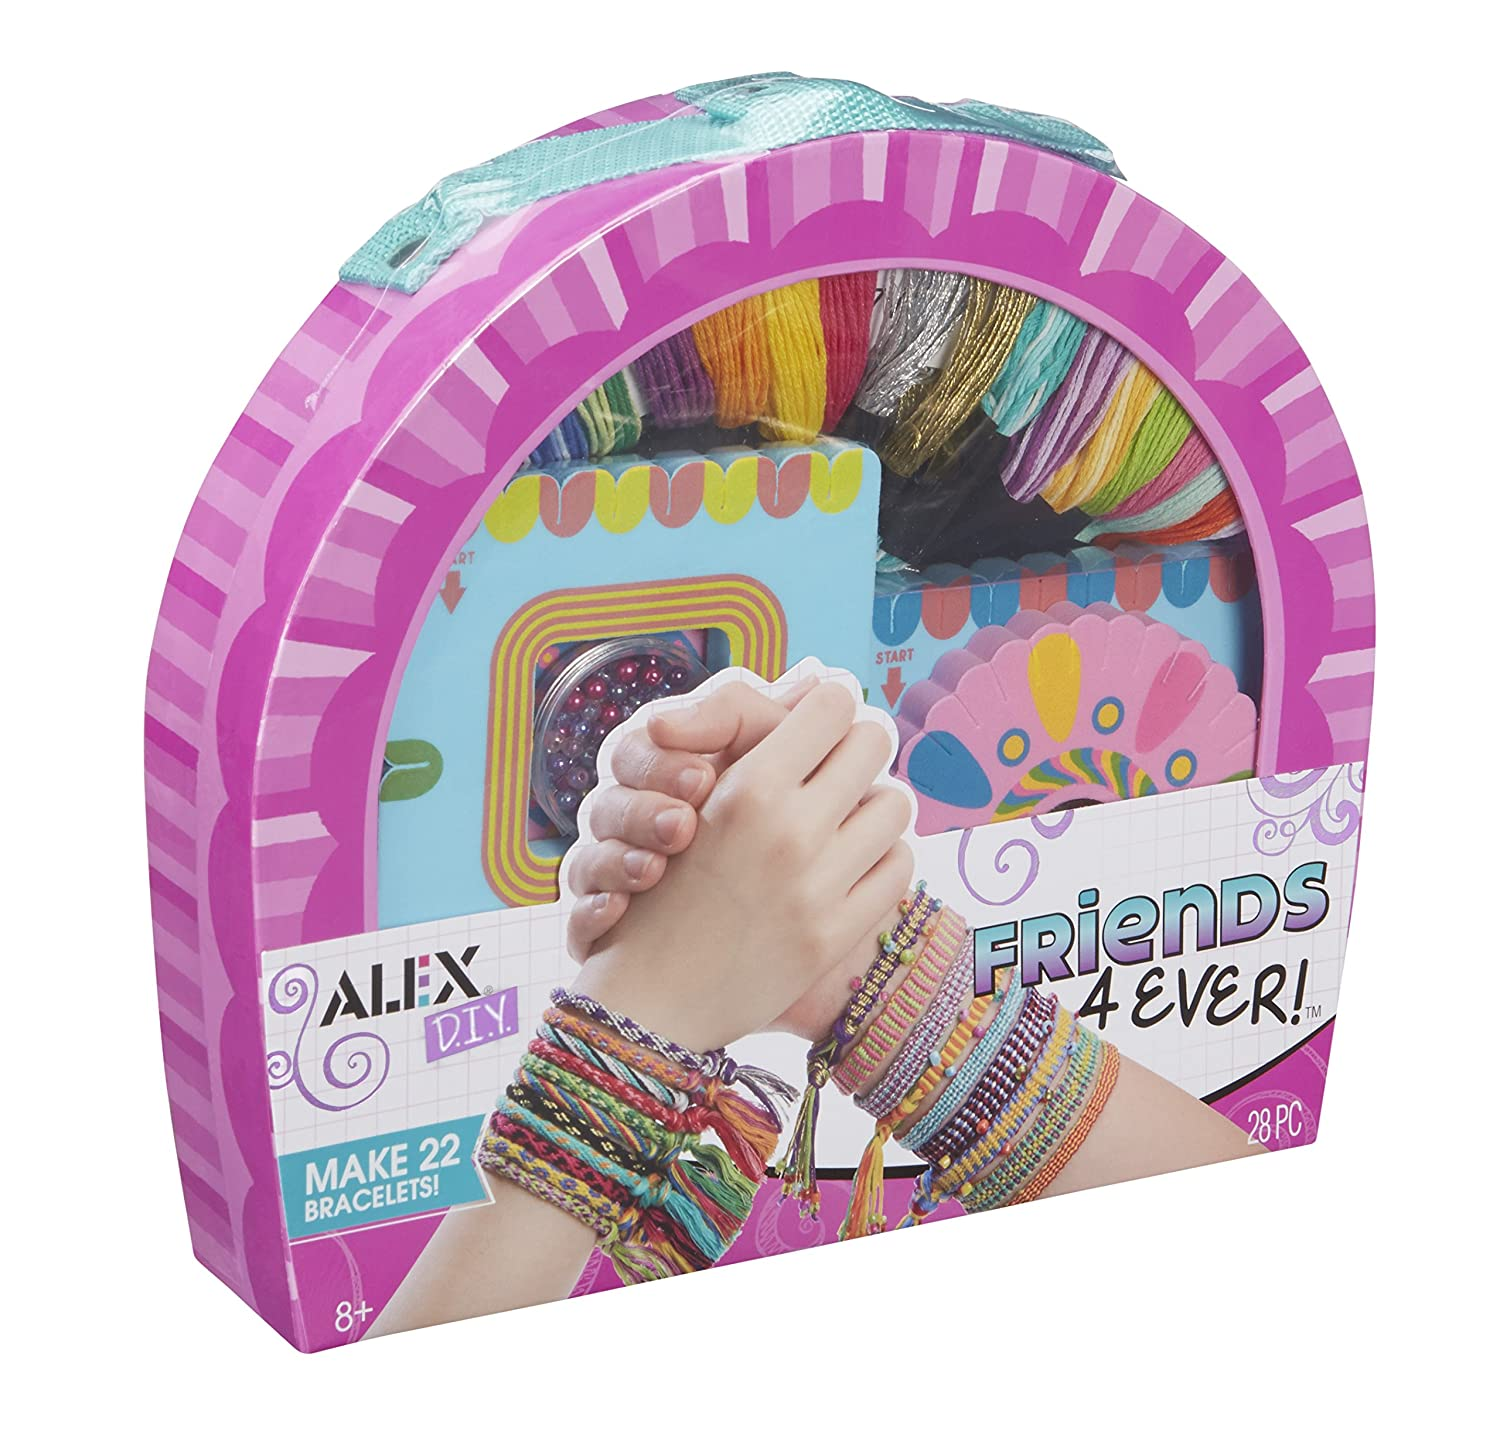 Alex 737WX-5 Cofanetto Braccialetti Dell'Amicizia, 22 Bracciali Alex Toys Crafts for Children